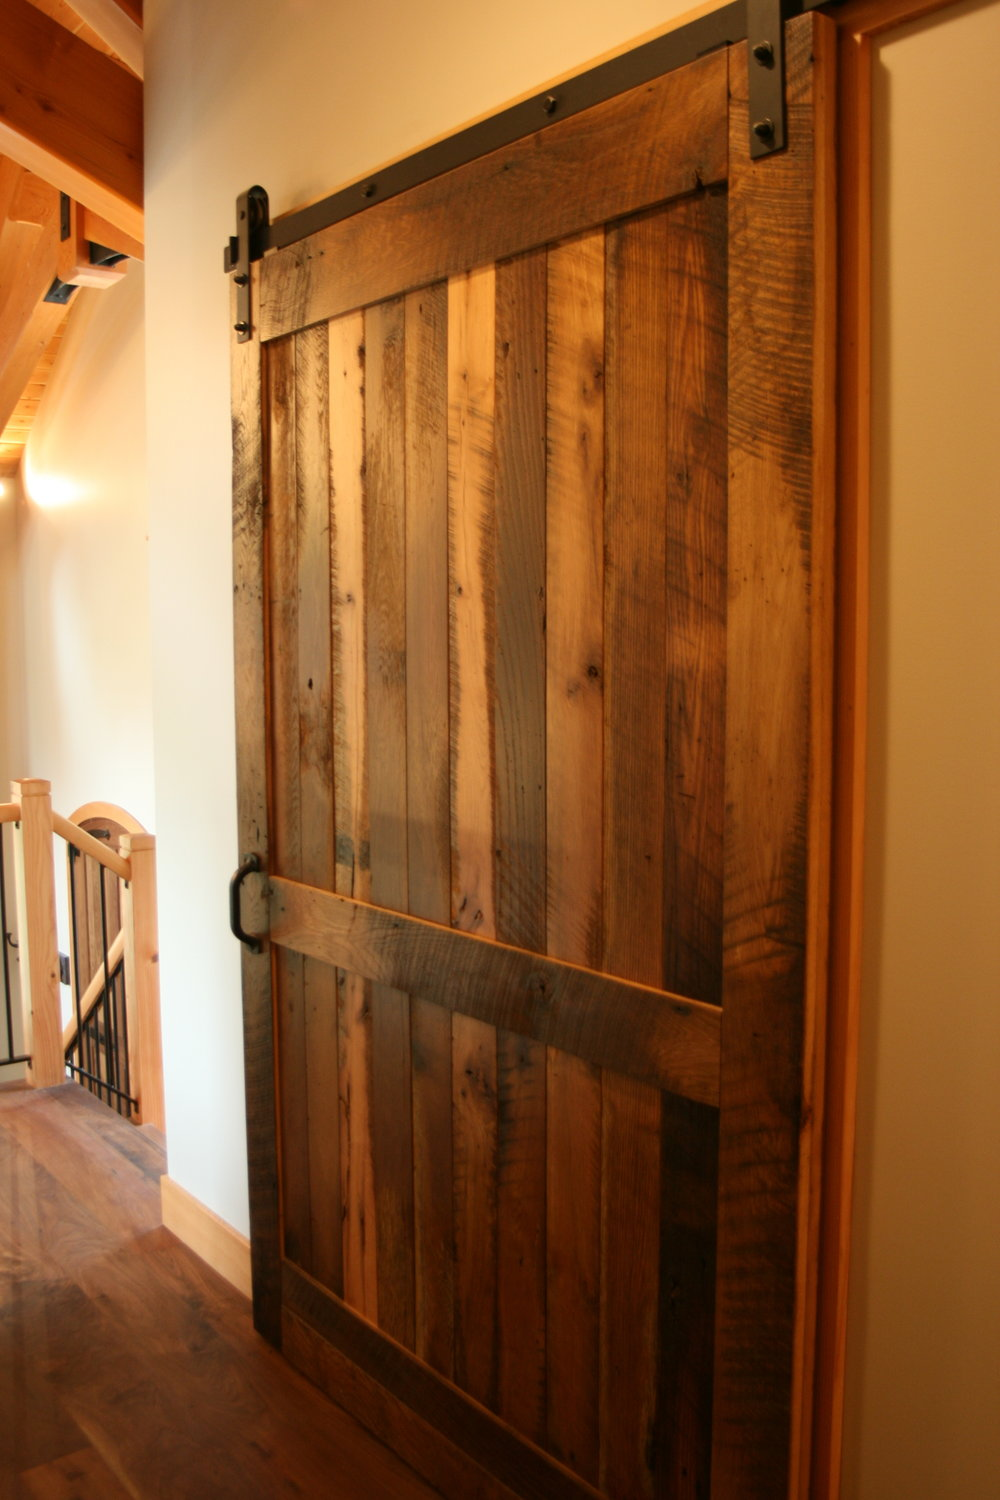 Settlers' Plank Flat Track Door conceals the laundry room